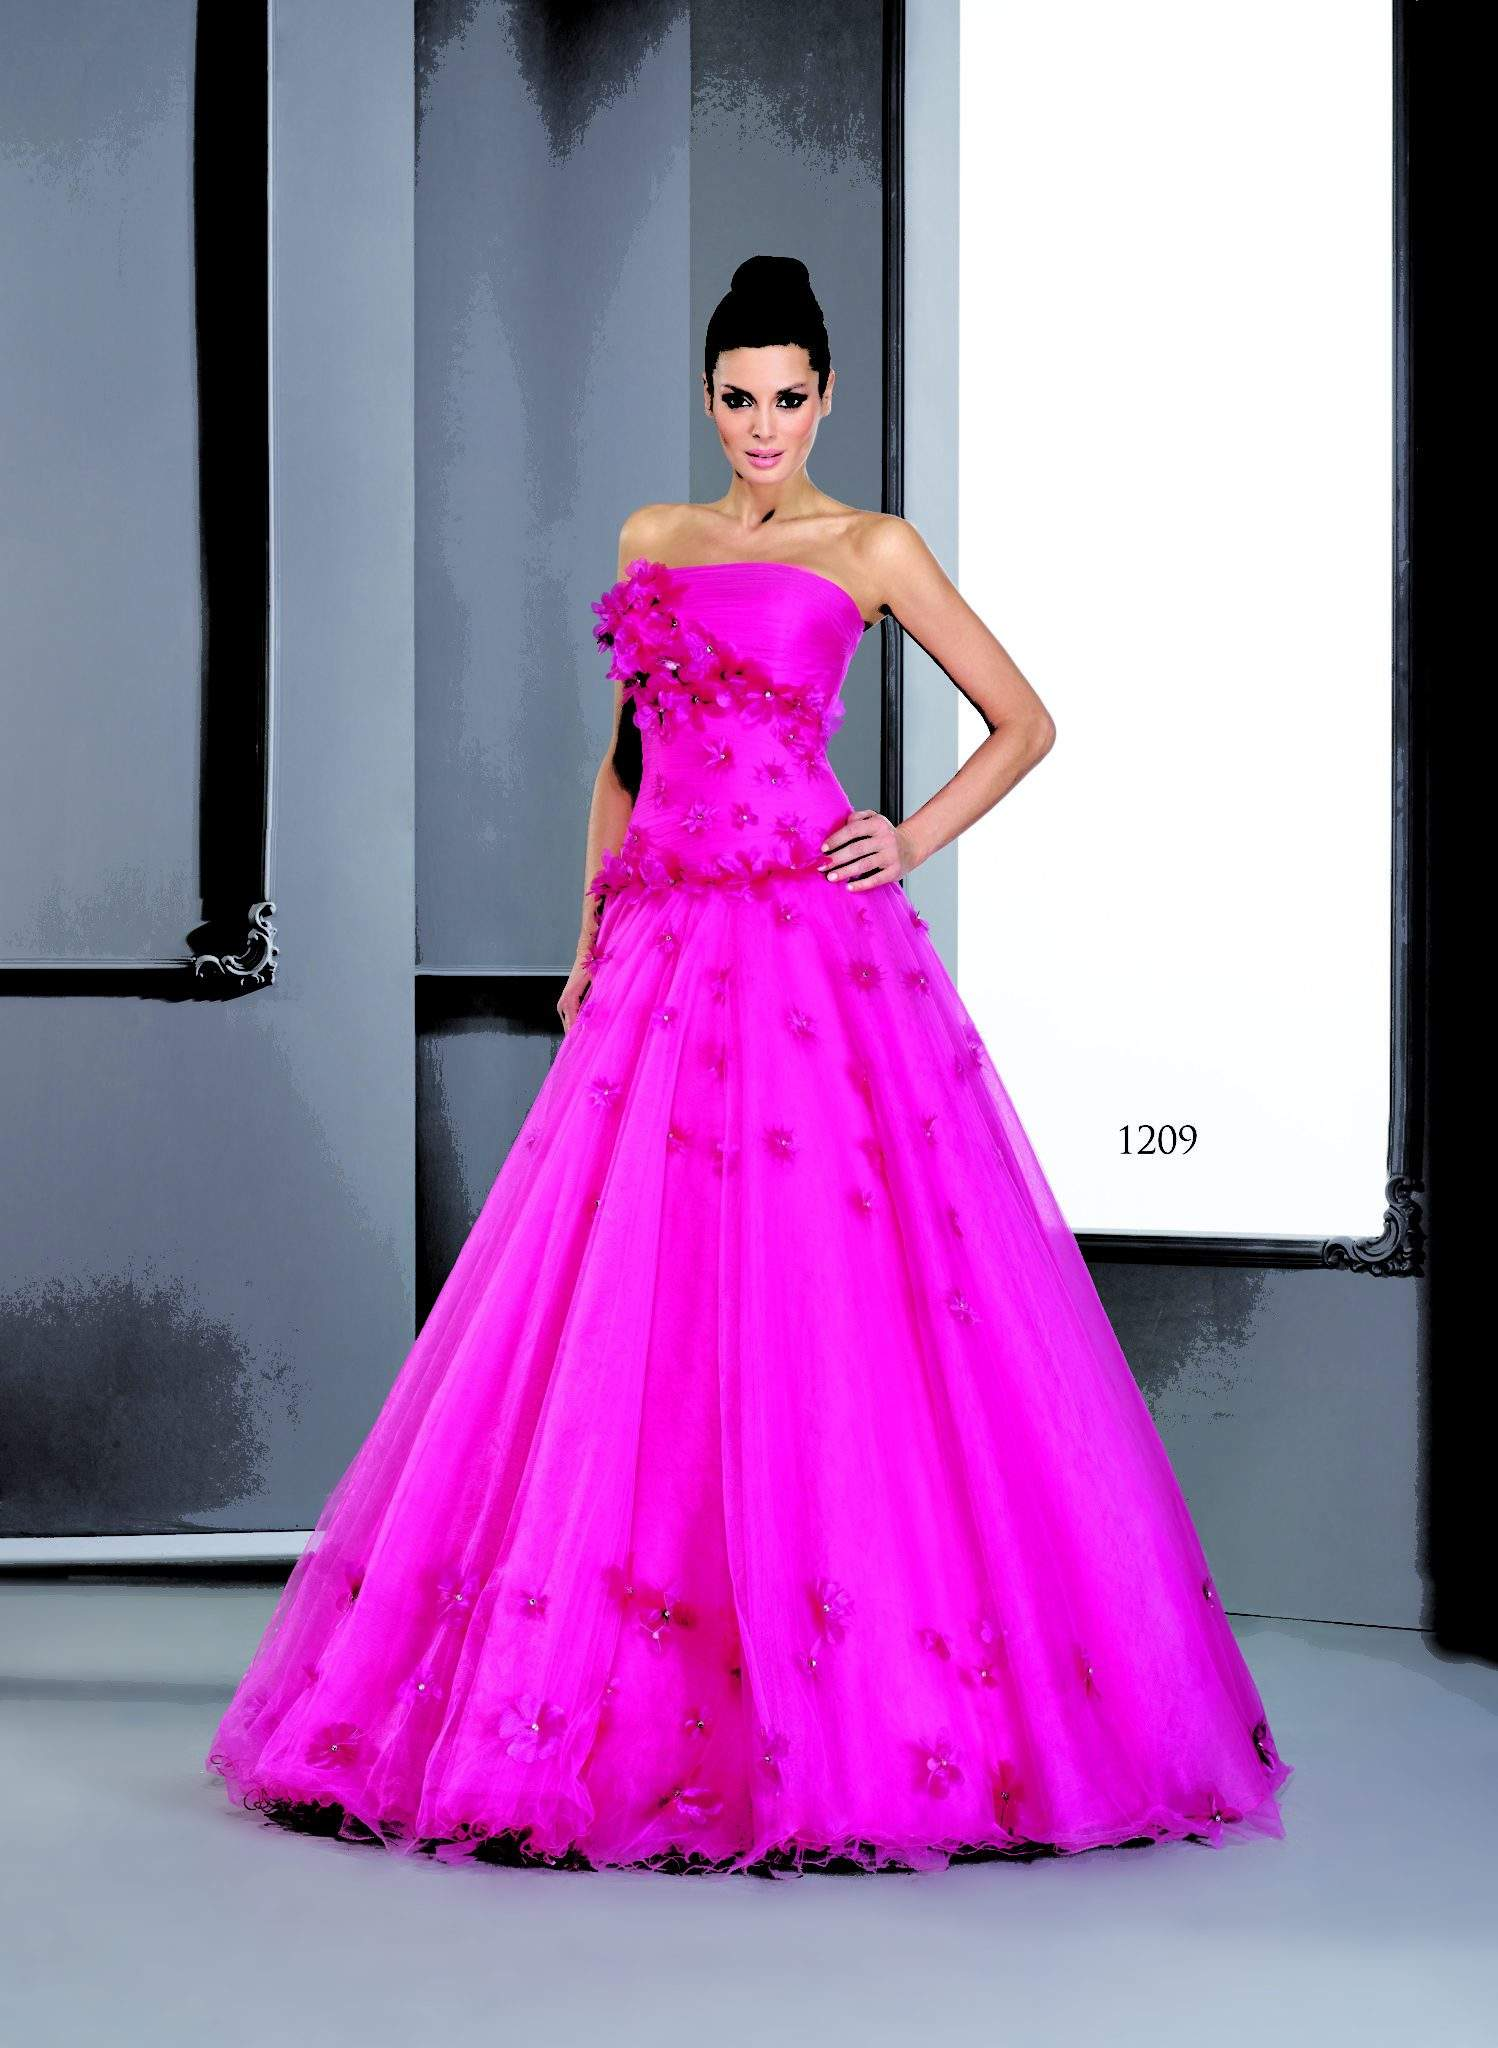 Vestidos de bola de color fucsia - Darius Cordell Fashion Ltd